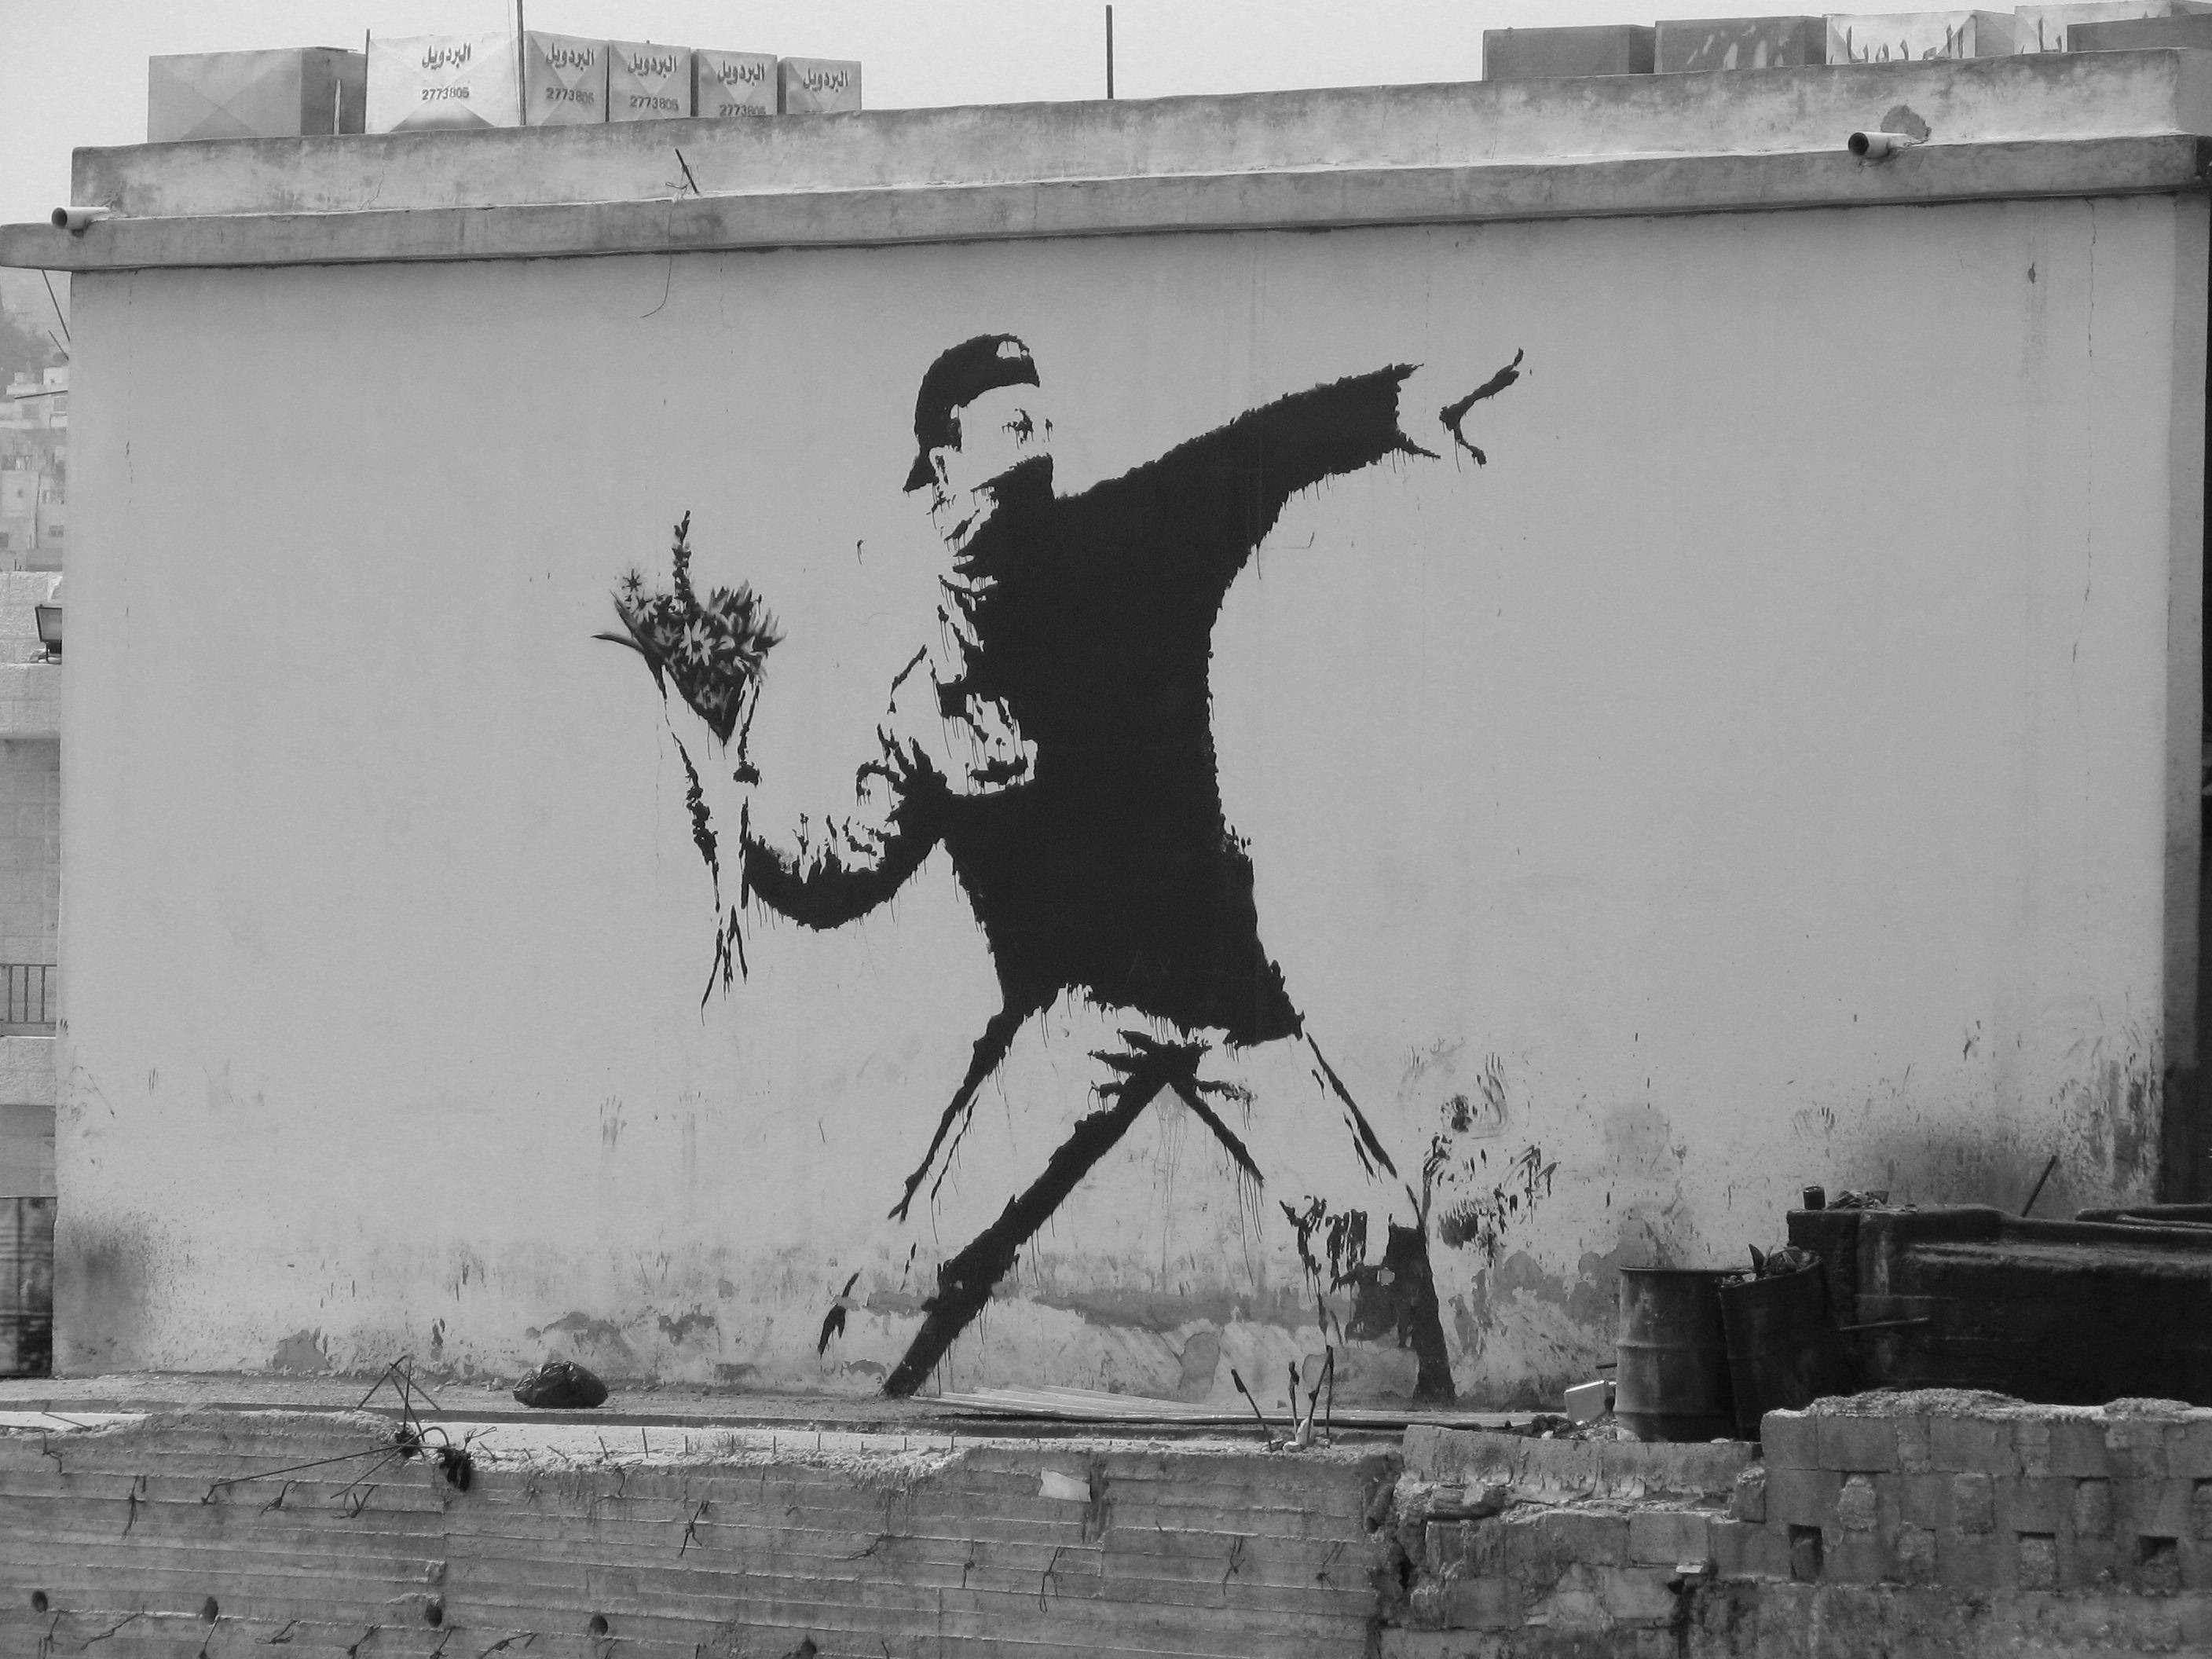 … banksy desktop wallpapers wallpaper cave; banksy wallpapers hd …